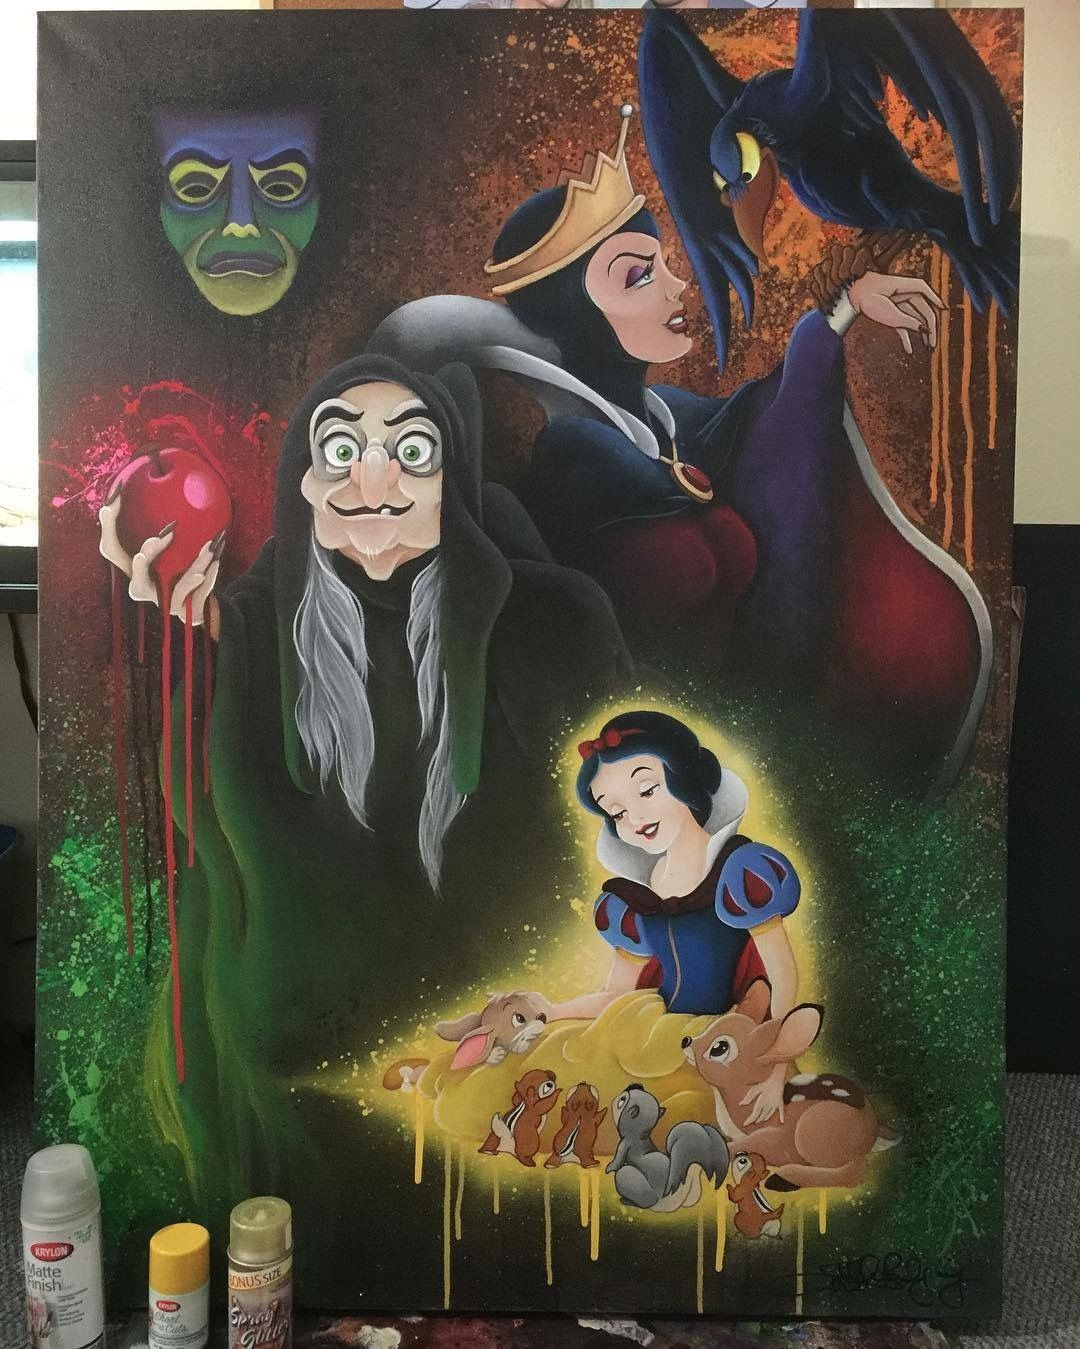 Snow White  Evil Queen Grimhilde also as the Old Hag feat the